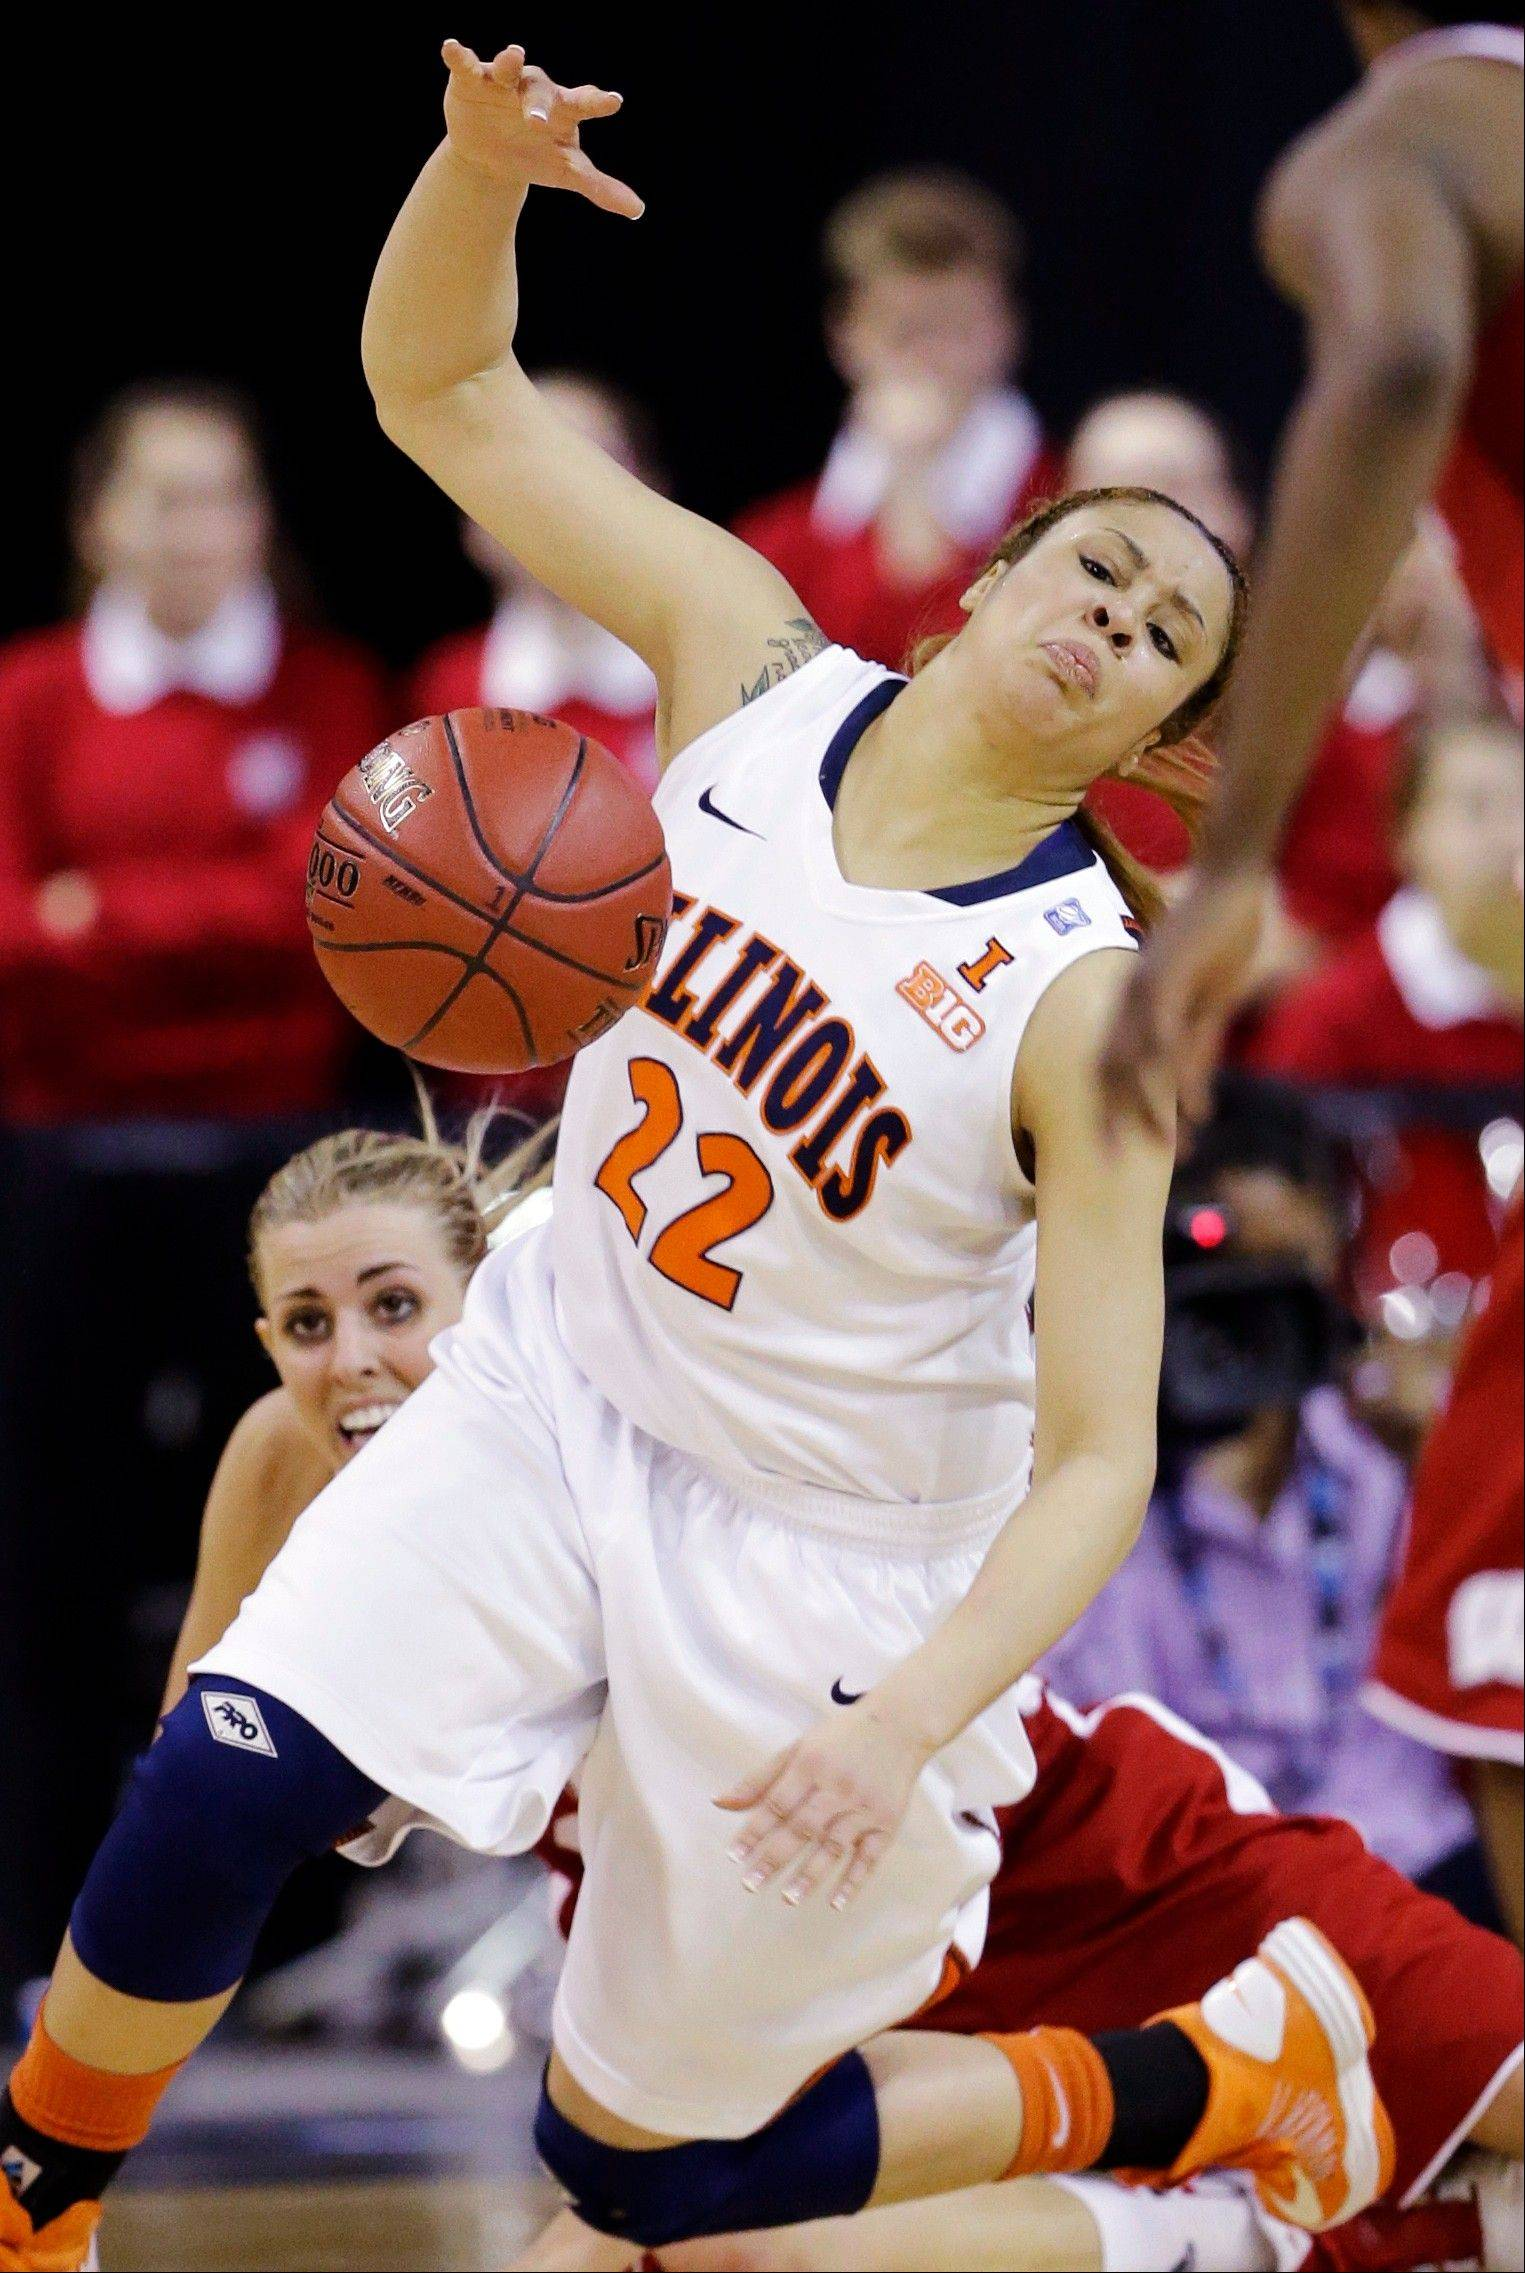 Illinois guard Ivory Crawford loses control of the ball during second-half action Thursday at the Big Ten Women's Basketball Tournament at the Sears Centre in Hoffman Estates. Wisconsin advanced with a 58-57 win.